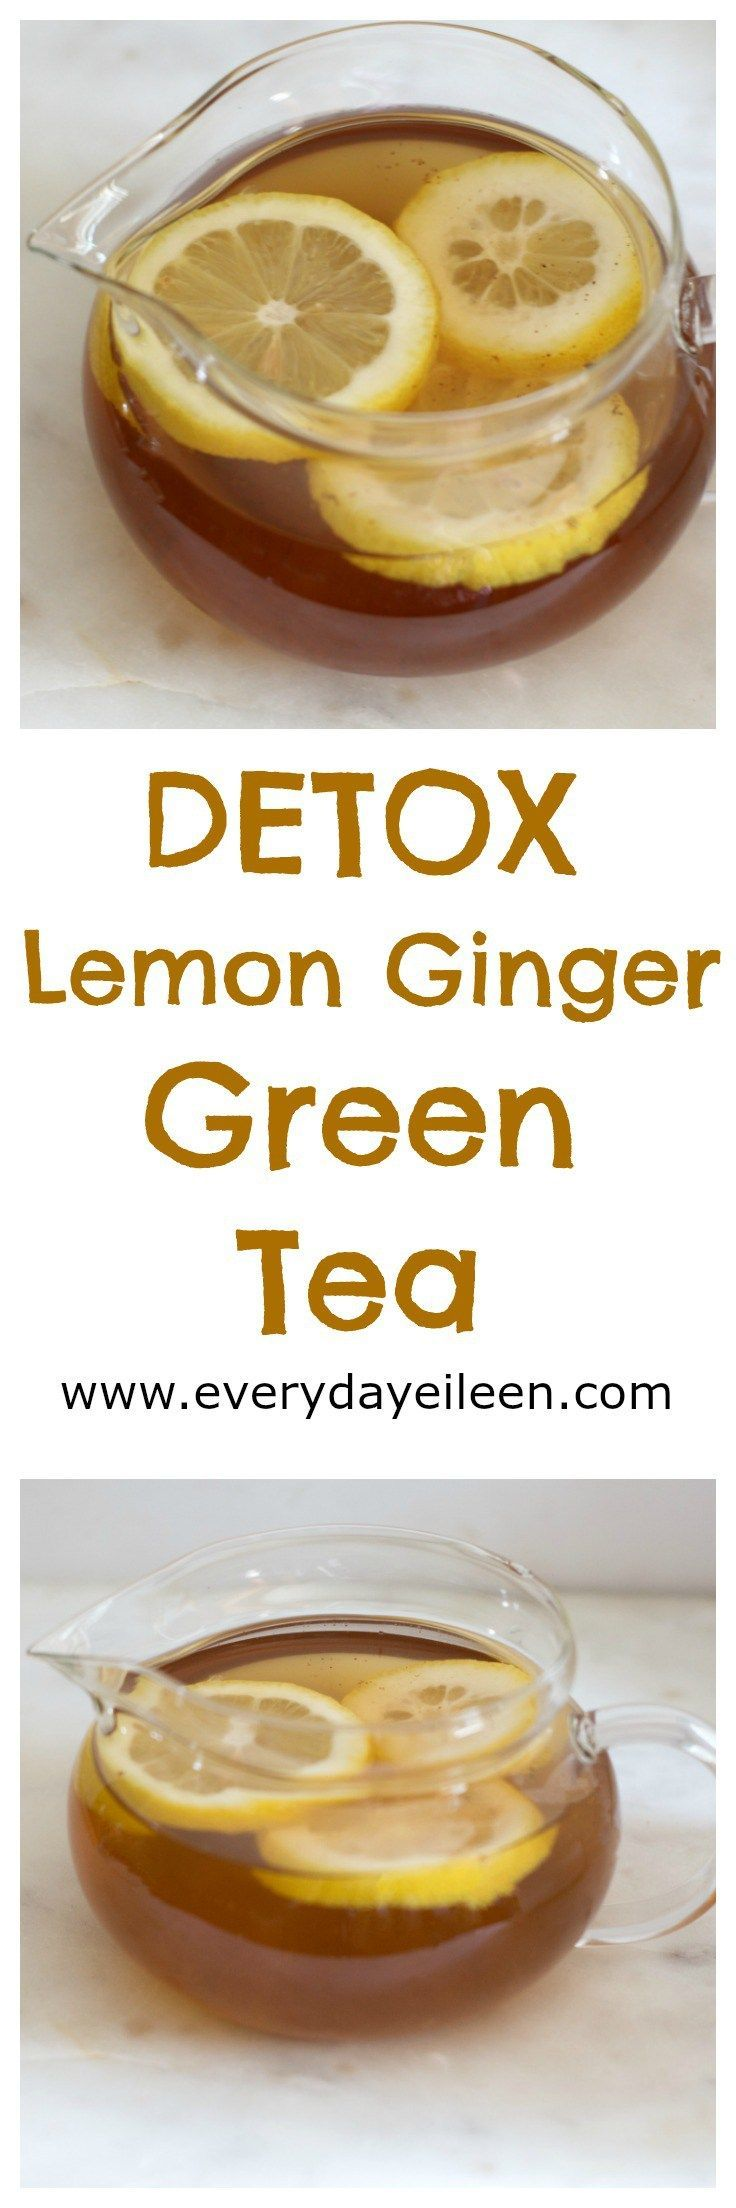 detox lemon ginger green tea is a healthy blend of green tea, lemon, ginger and cayenne. Filled with antioxidants and health benefits.  A great way to start the day!